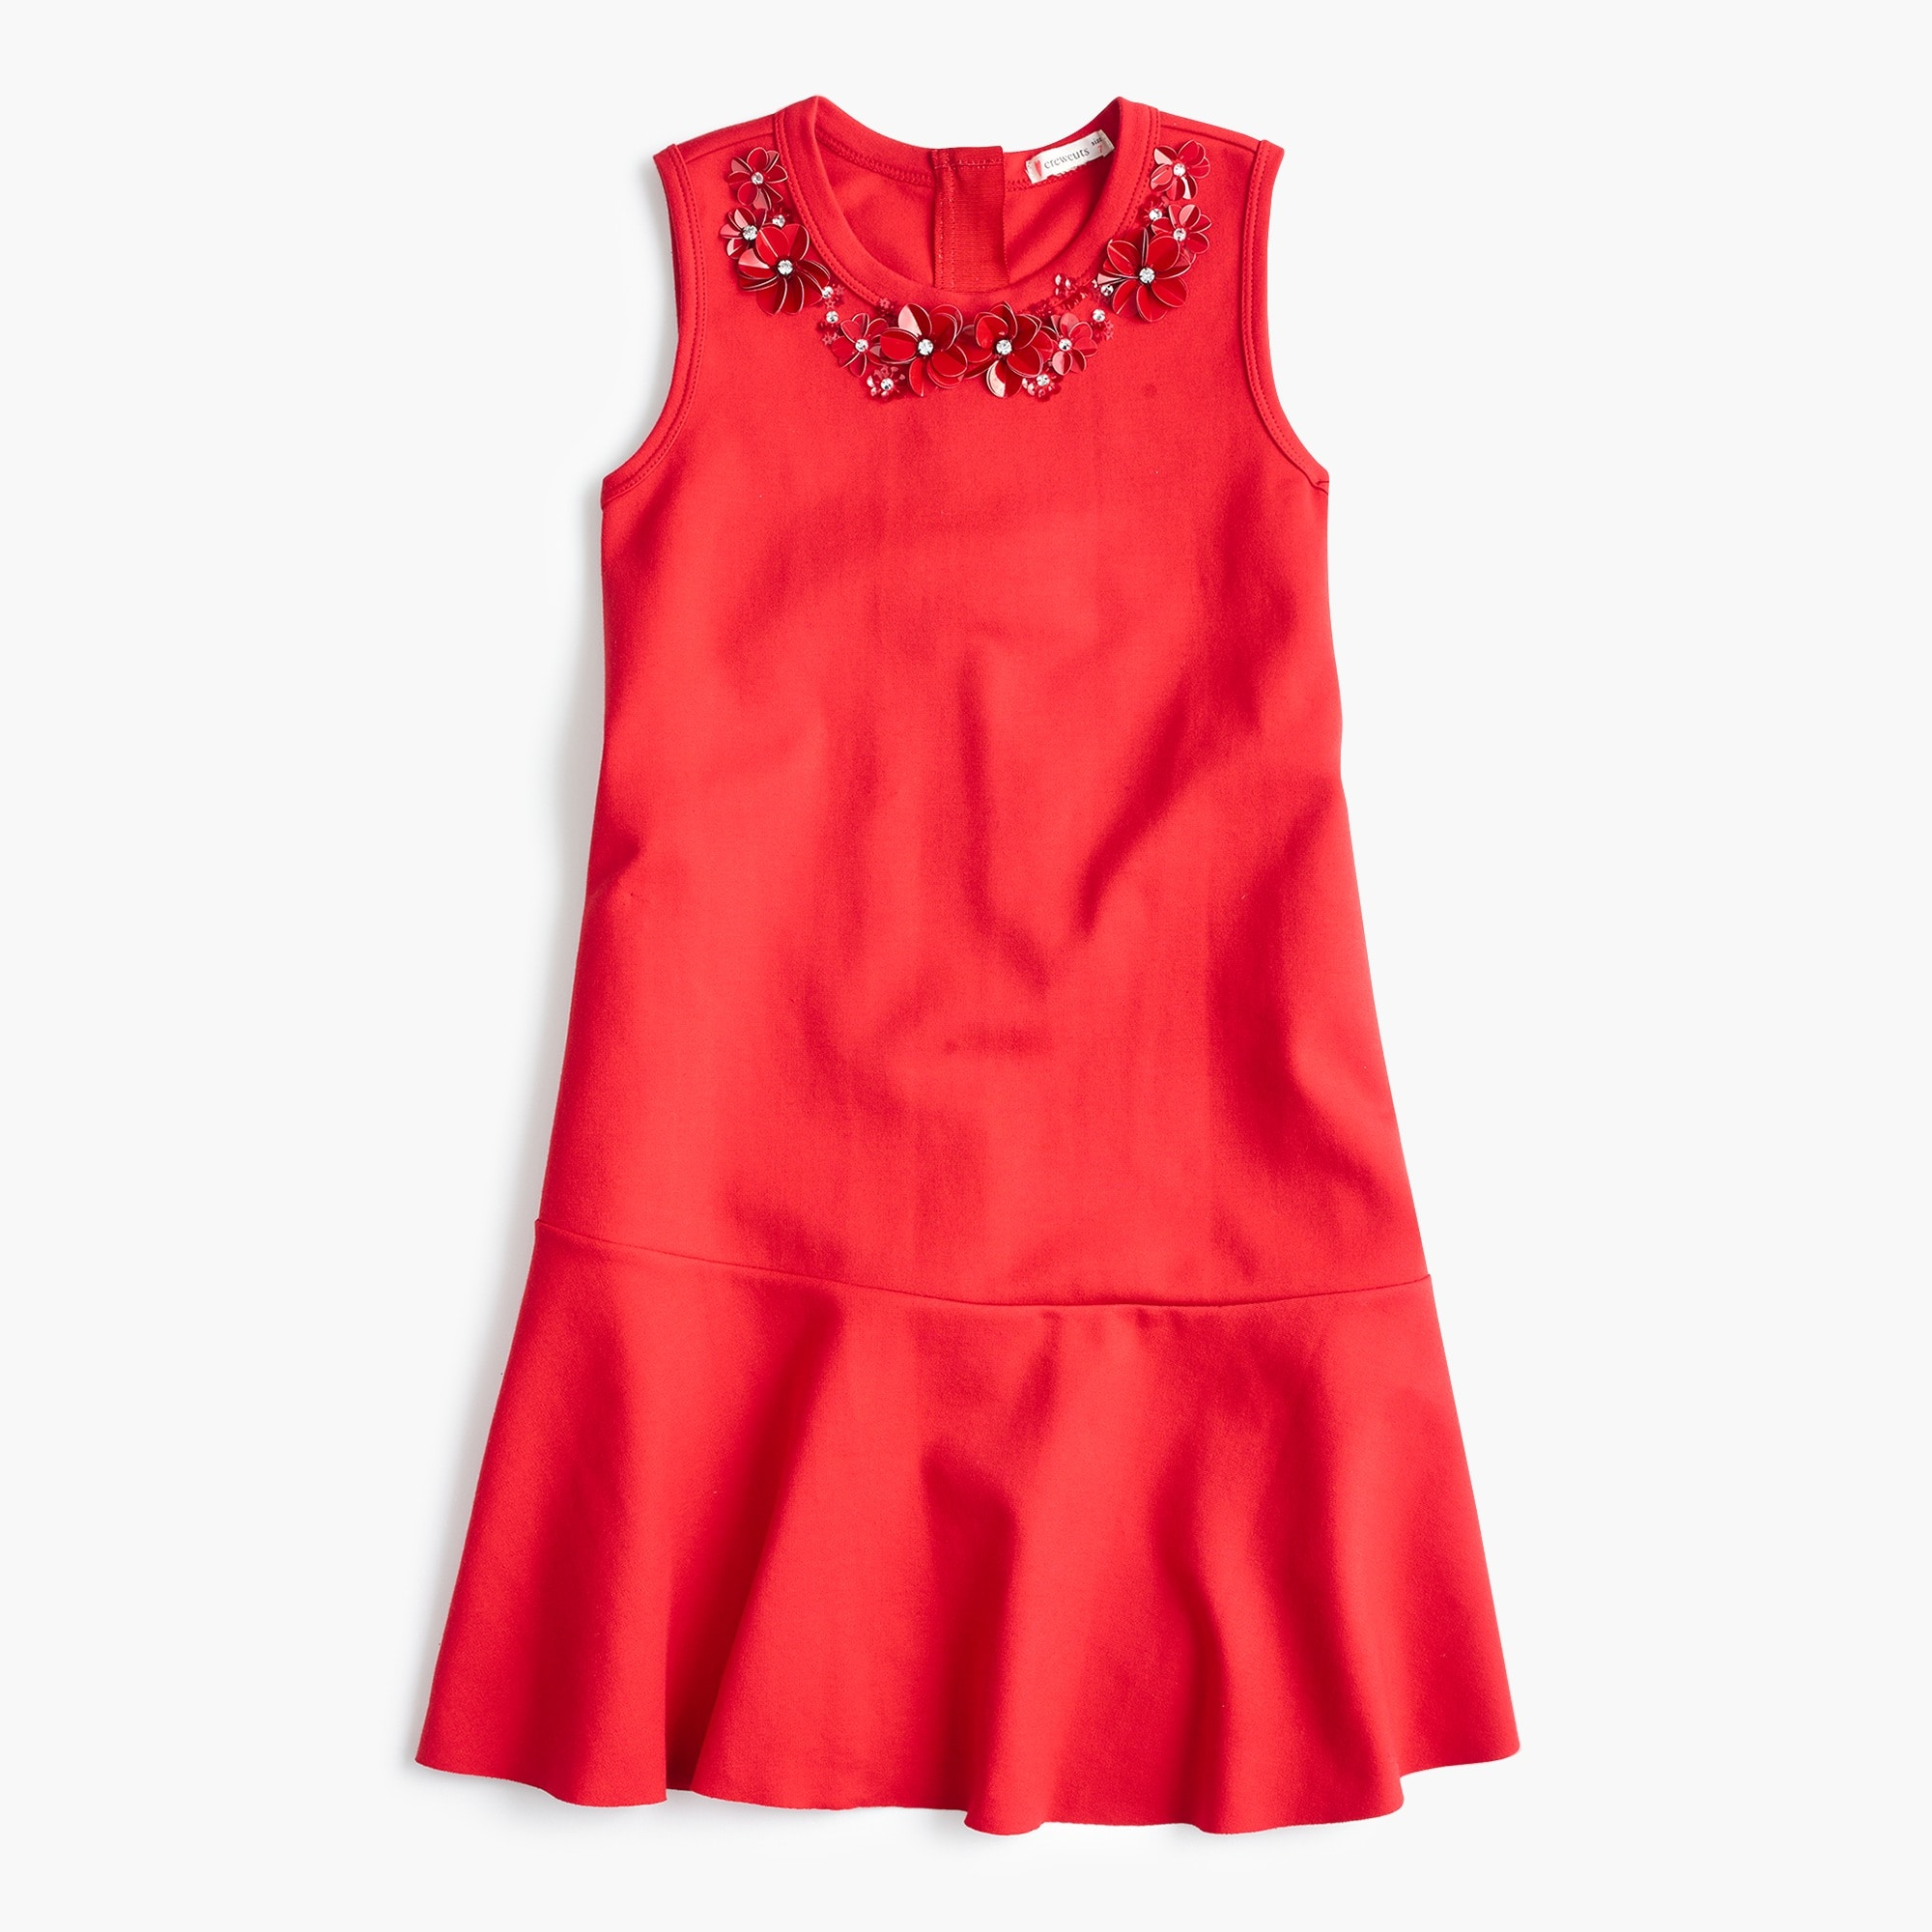 Girls Dress Images with Name